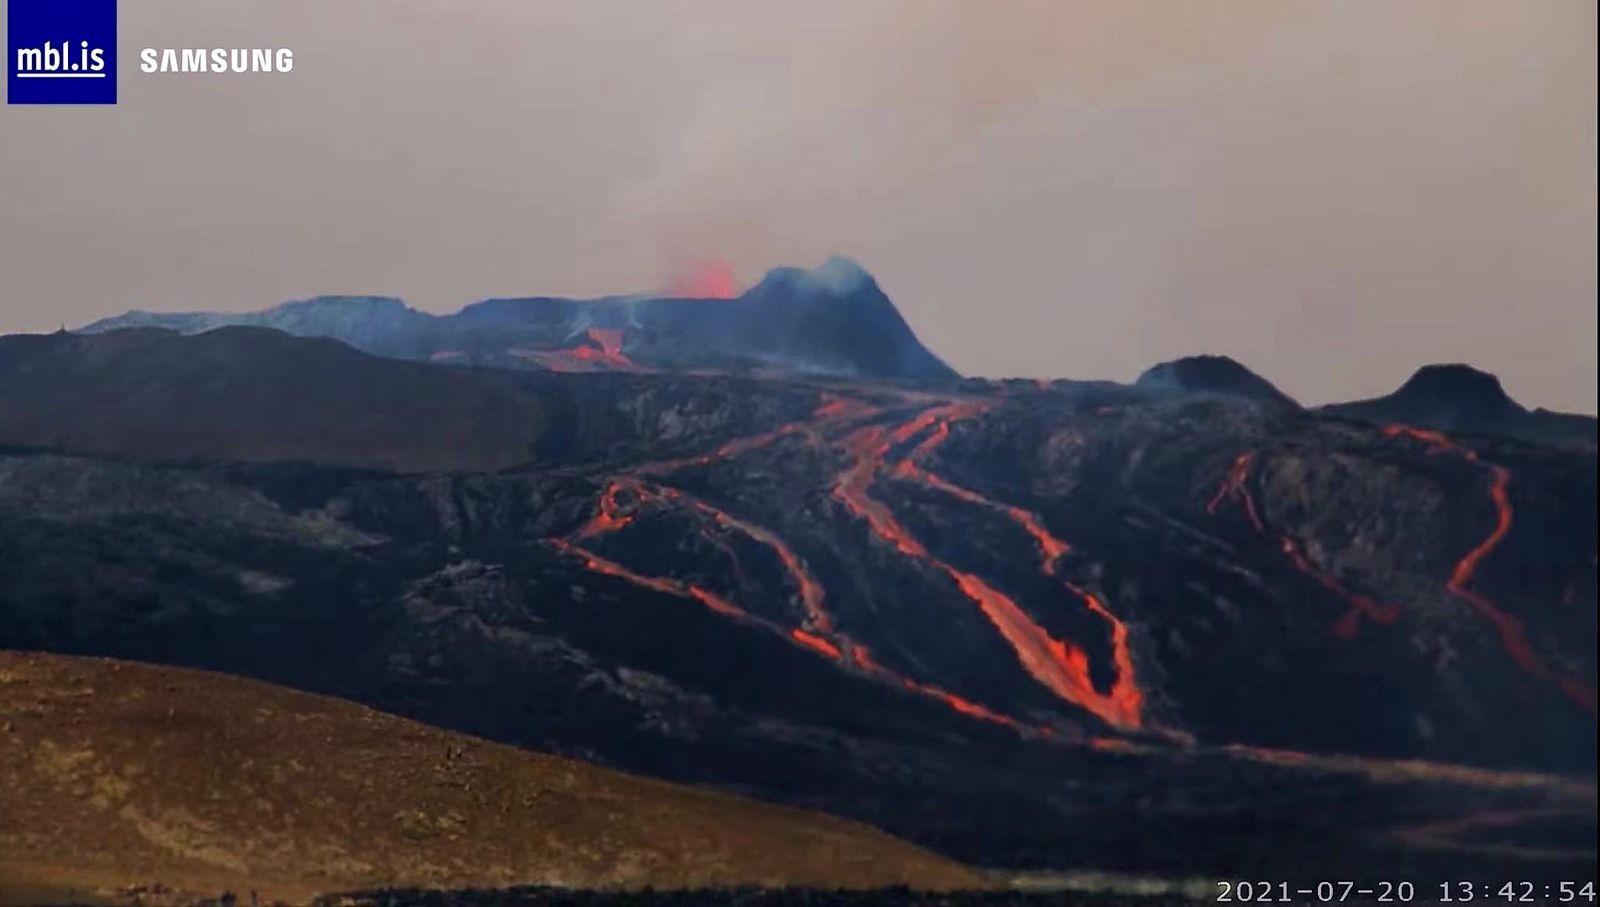 Fagradalsfjall - the active cone and the lava flows on 20.07.2021 / 13:42 - webcam mbls